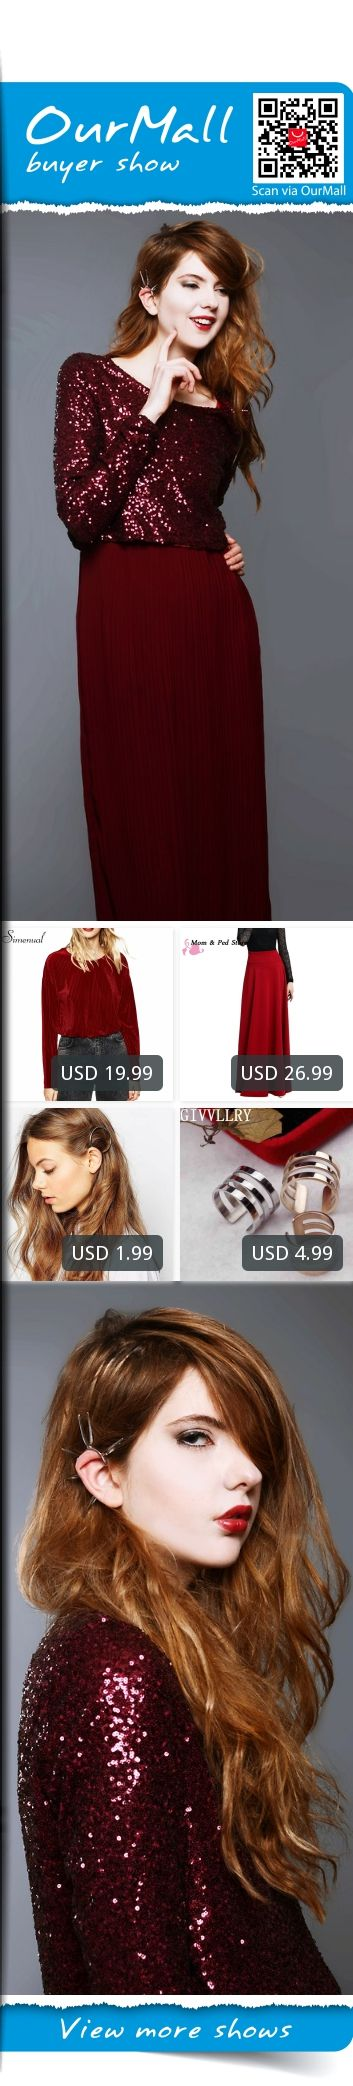 This is Ebba Zingmark's buyer show in OurMall;  1.new fashion velvet t-shirts for women crop top red long sleeve slim short t shirts hot 2.Pleat Elegant Skirt Wine Red Black Solid Color Long Skirts Women Faldas Saia 5XL 3.New Fashion Women Gold Silver Circle Plated Metal Trian... please click the picture for detail. http://ourmall.com/?3aqaMr #skirt #circleskirt #midiskirt #pleatedskirt #laceskirt #pencilskirt #Maxiskirt #skirtskater #kneelengthskirt #bohoskirt